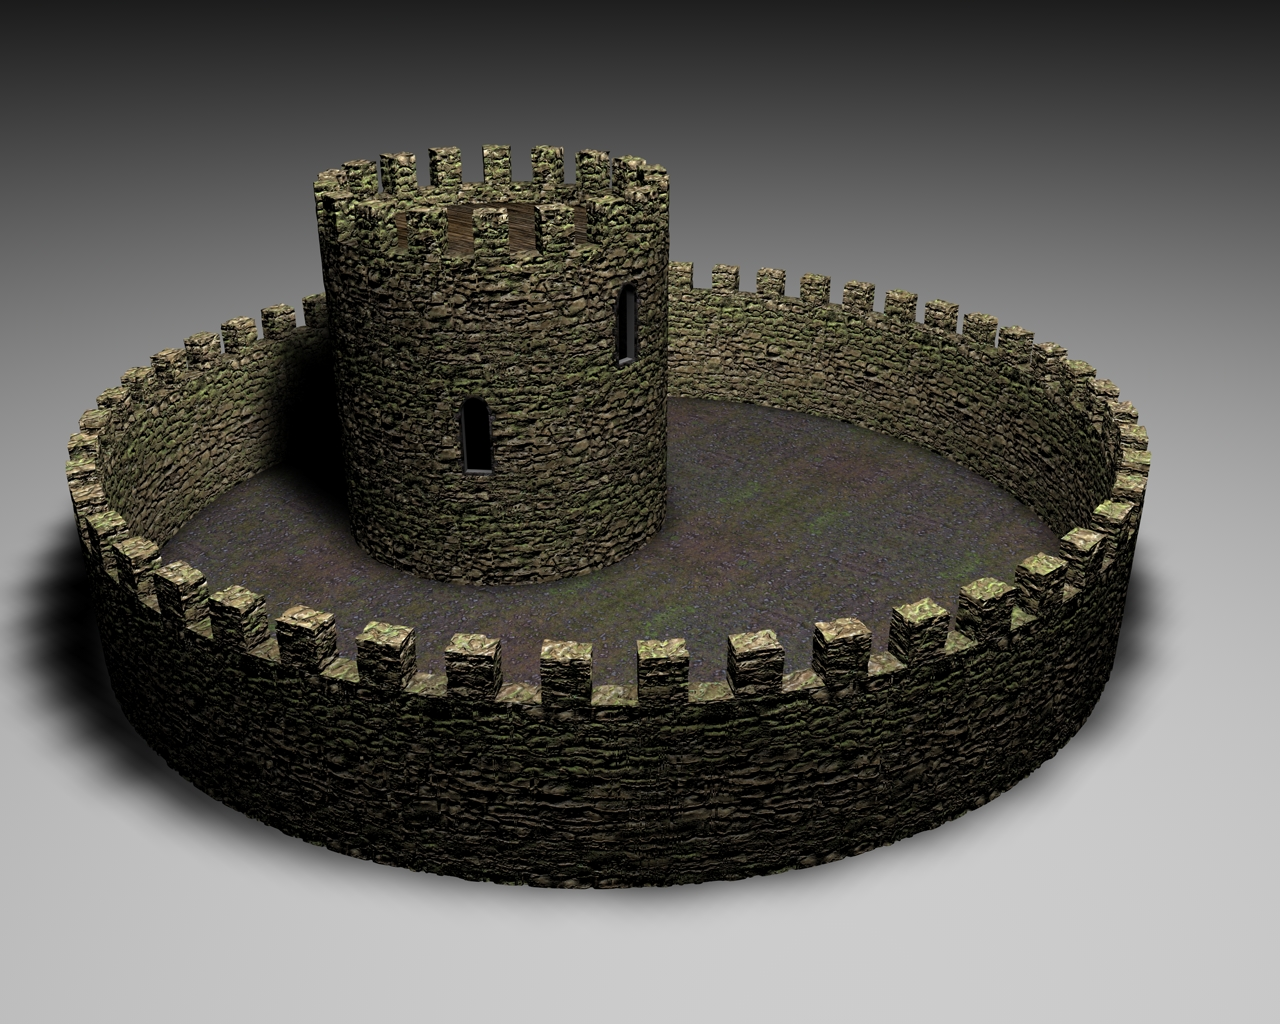 Reconstruction of the castle wall and tower